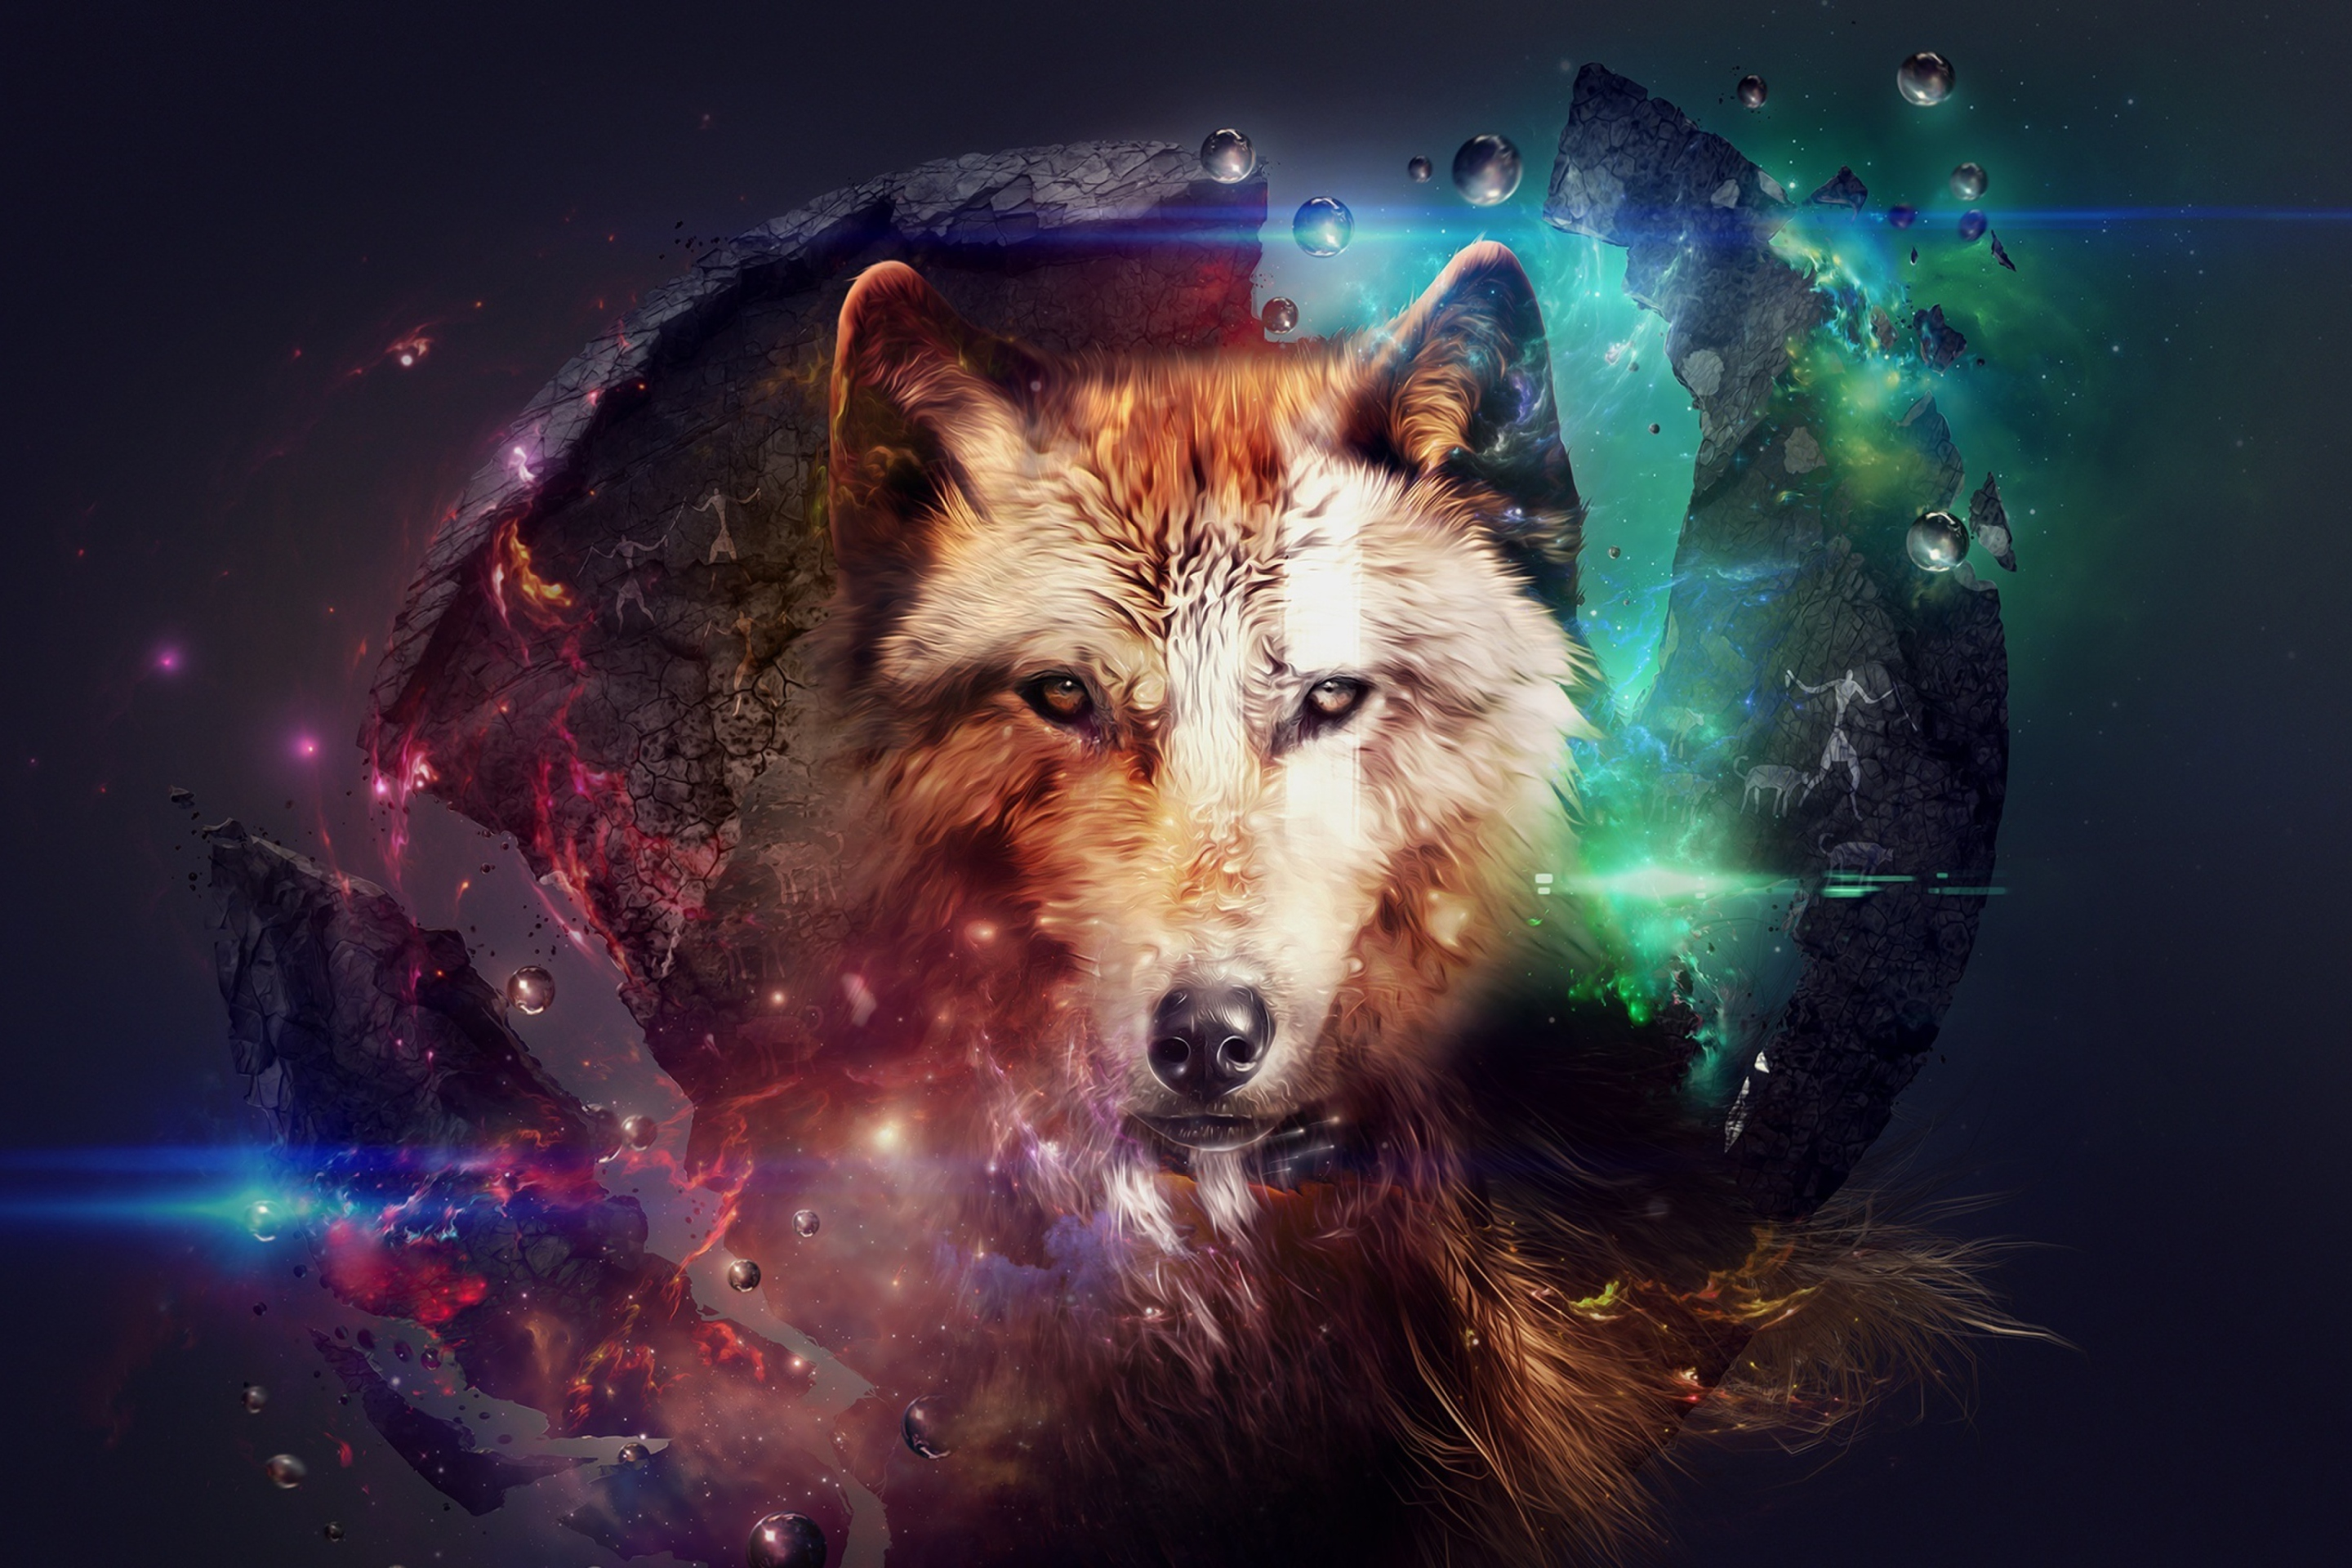 Wallpaper Lobo con luces de colores Images